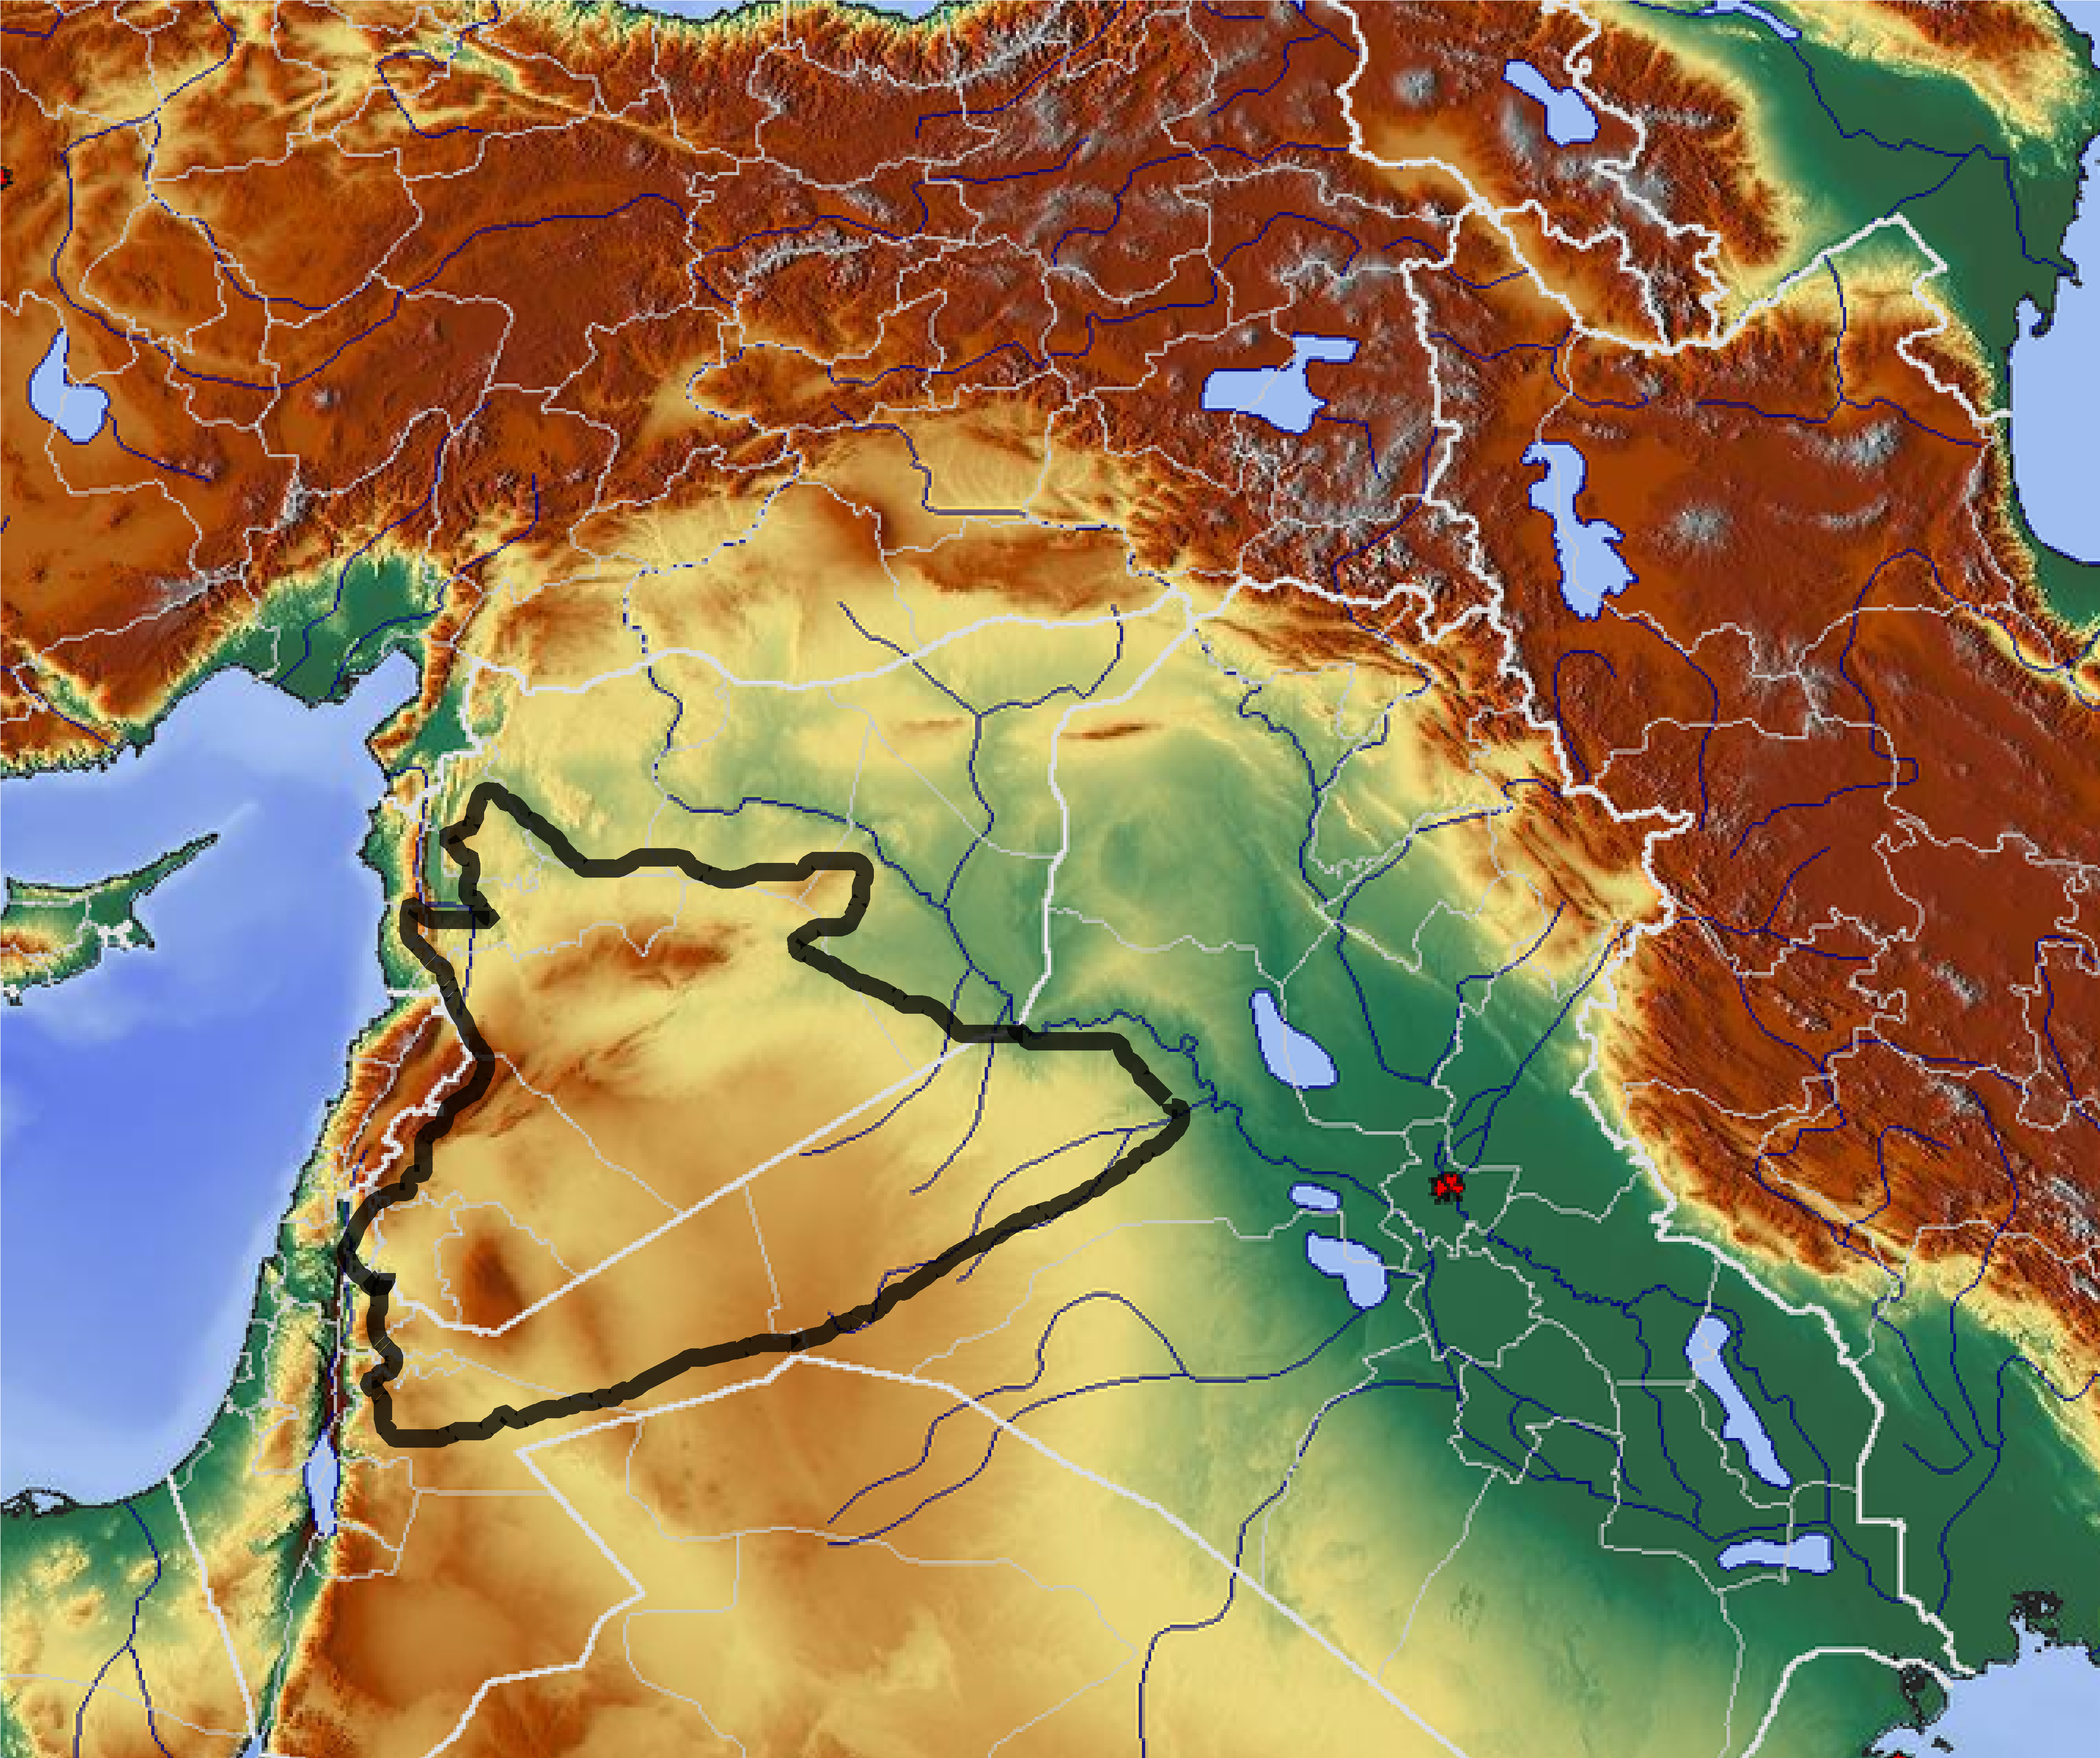 File:Geographical location of the Syrian desert.png - Wikimedia Commons